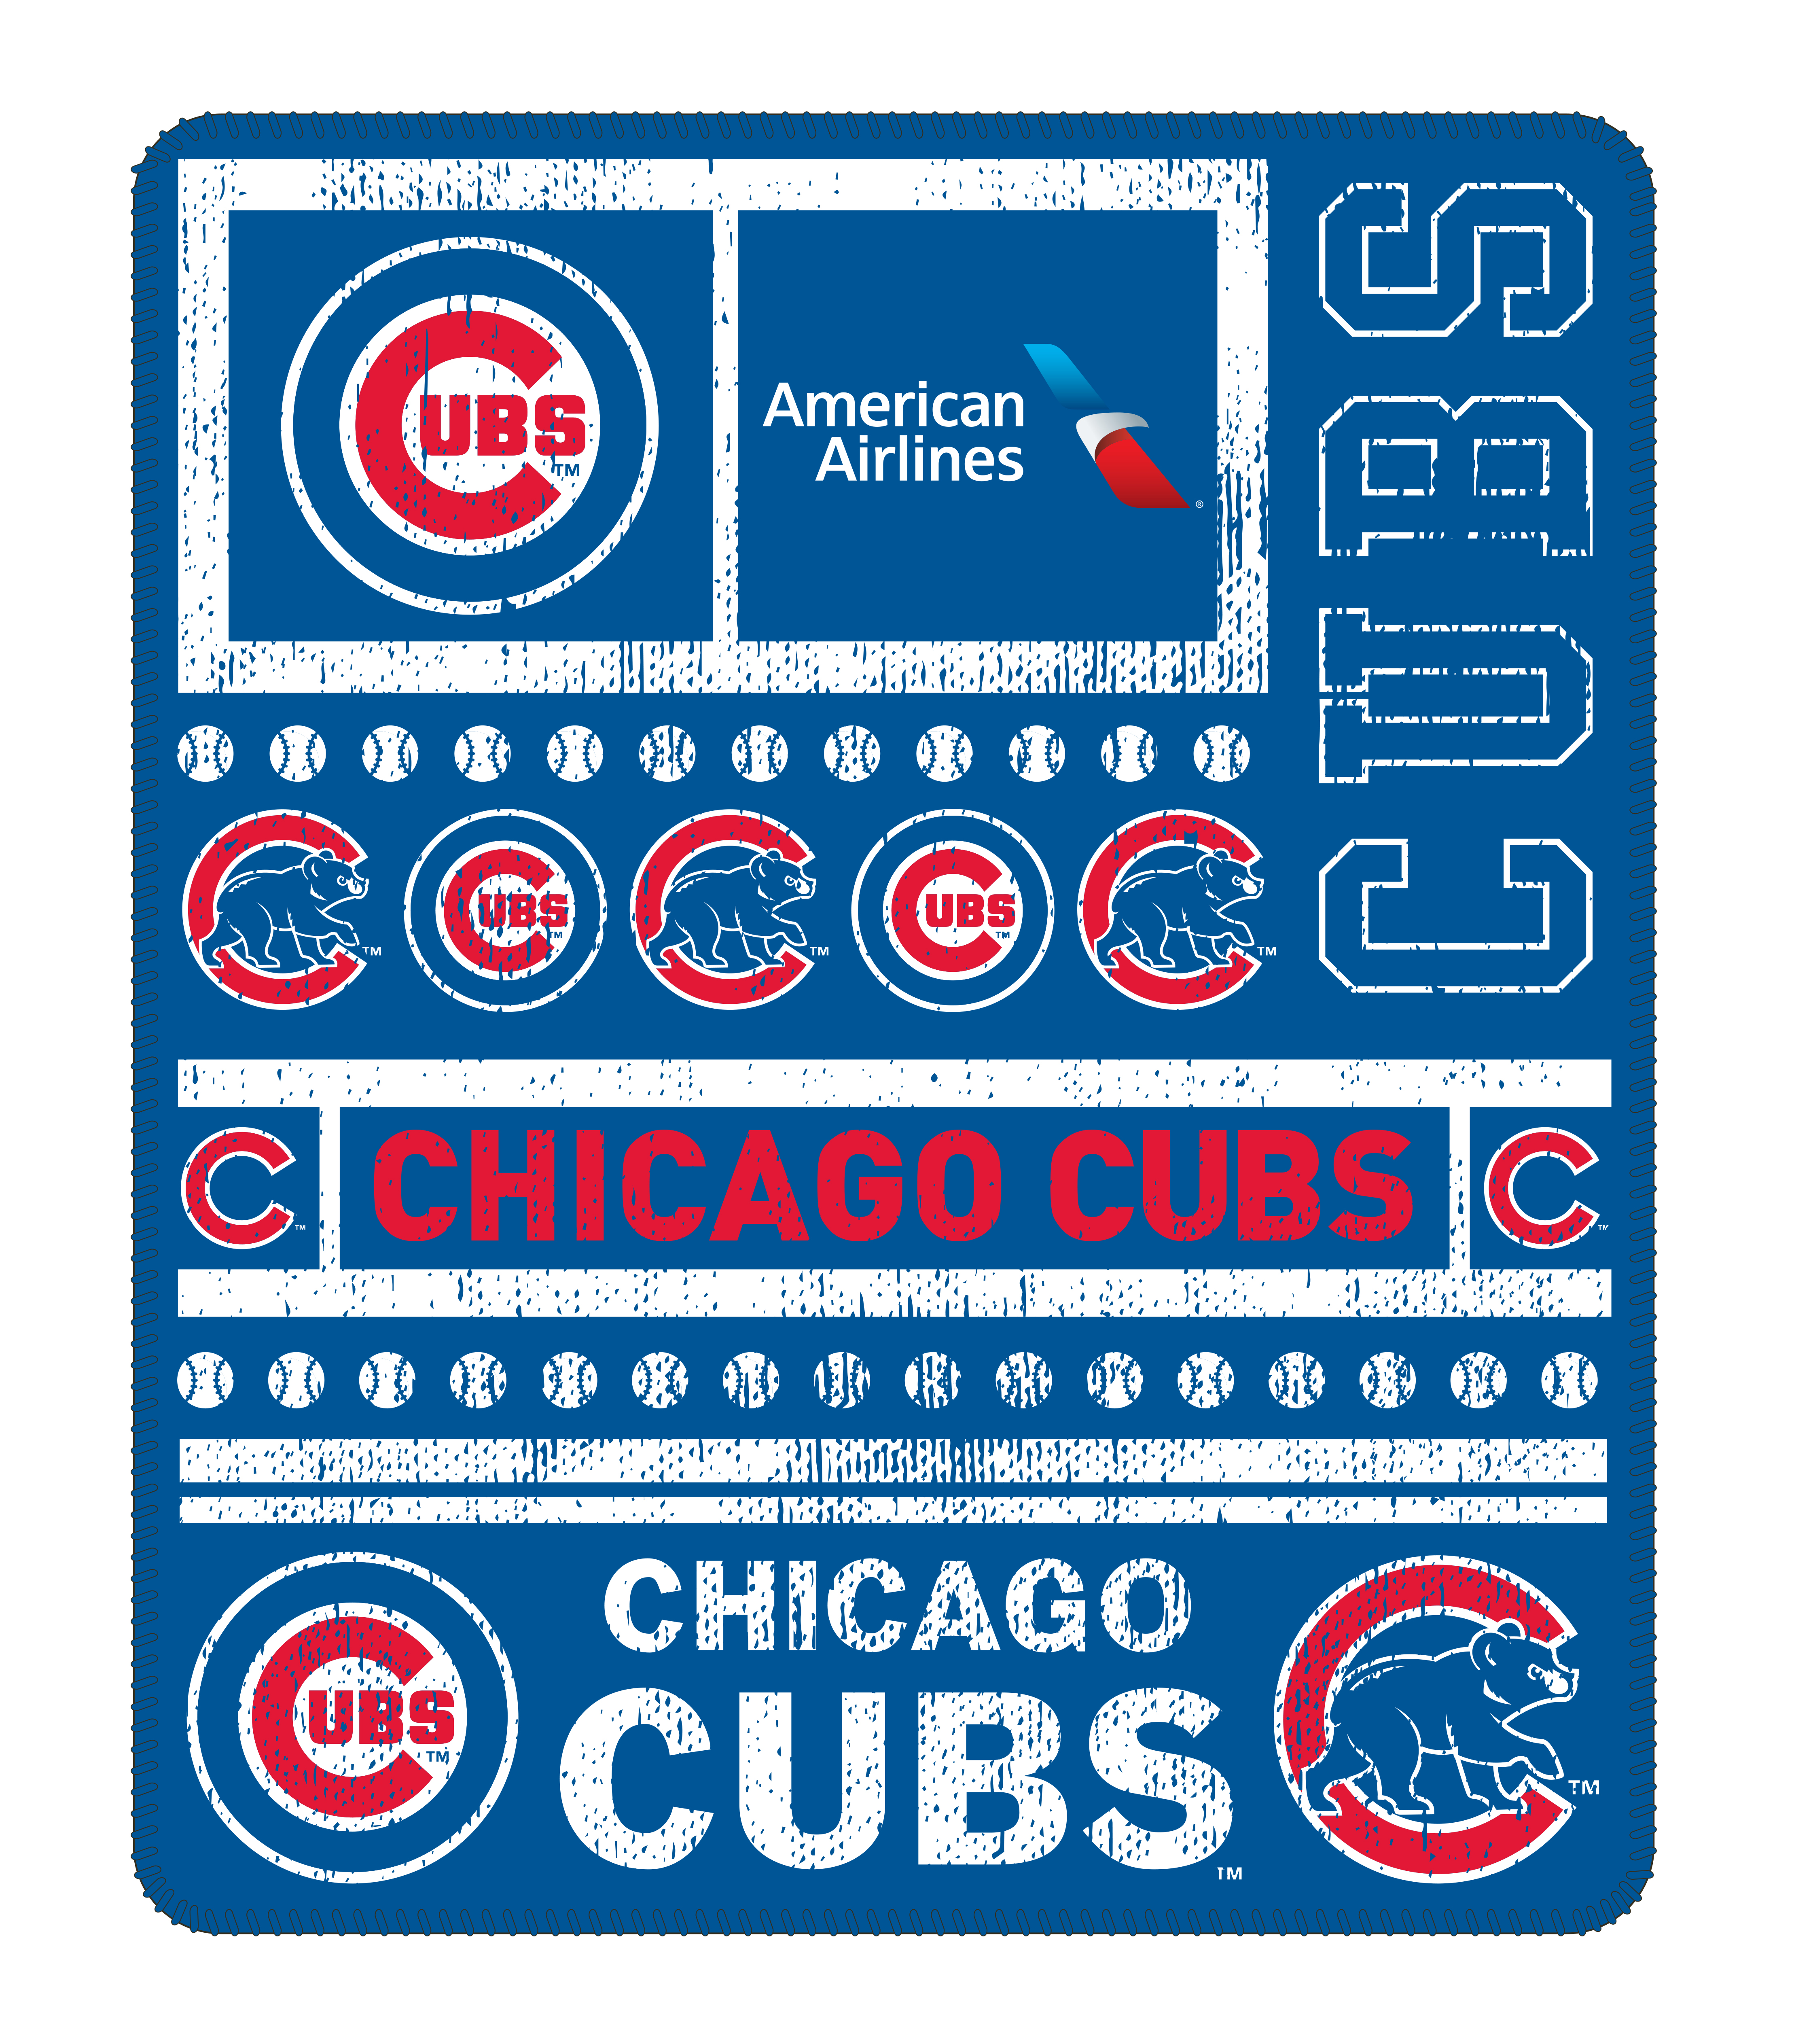 Chicago cubs giveaways 2018